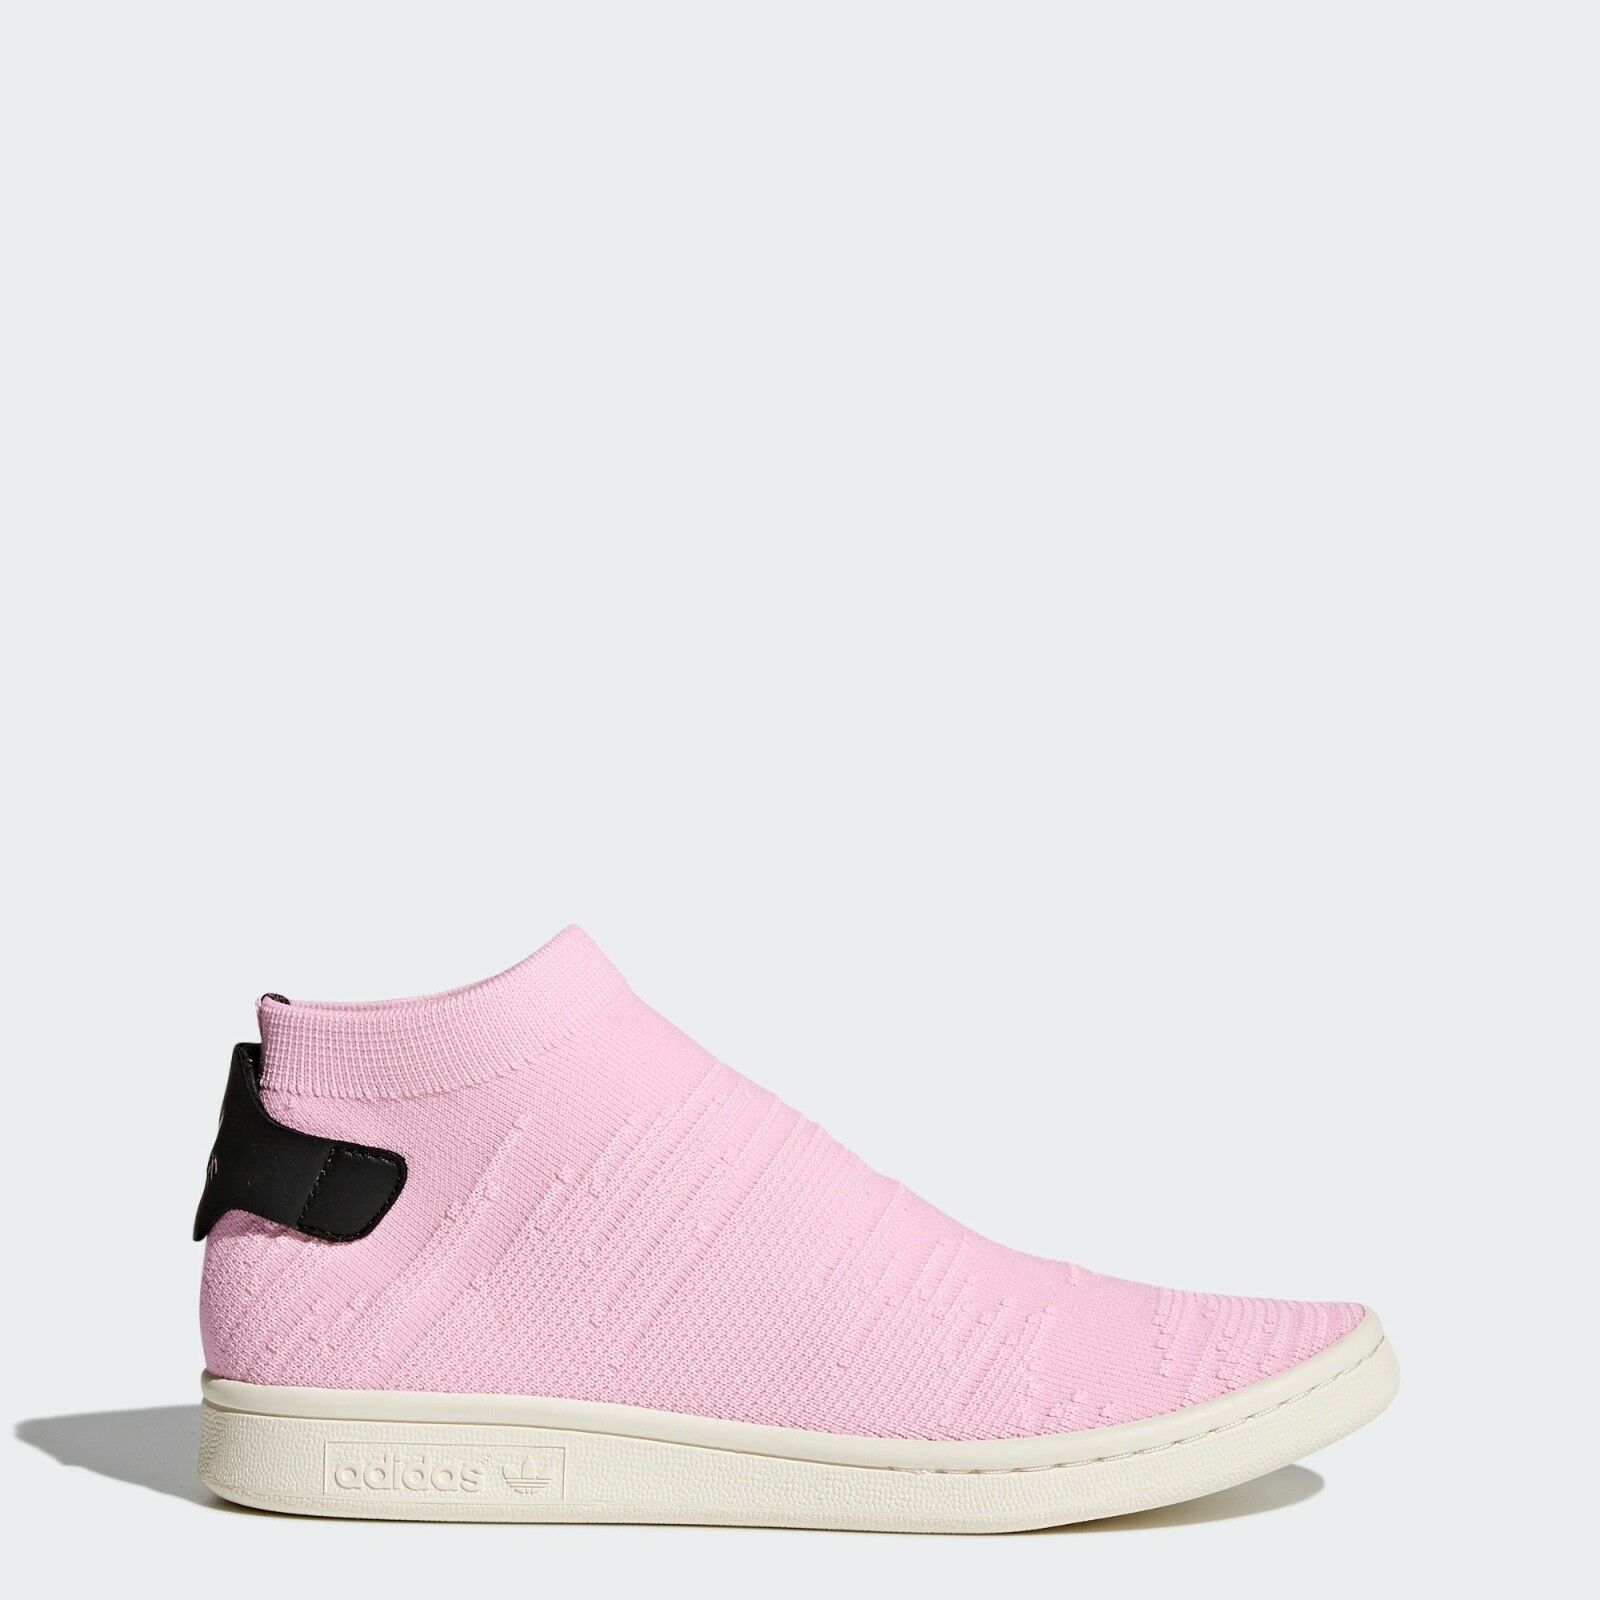 separation shoes 15730 0e0b0 Adidas Women s Oroginals Stan Smith Shock Primeknit Shoes BY9250